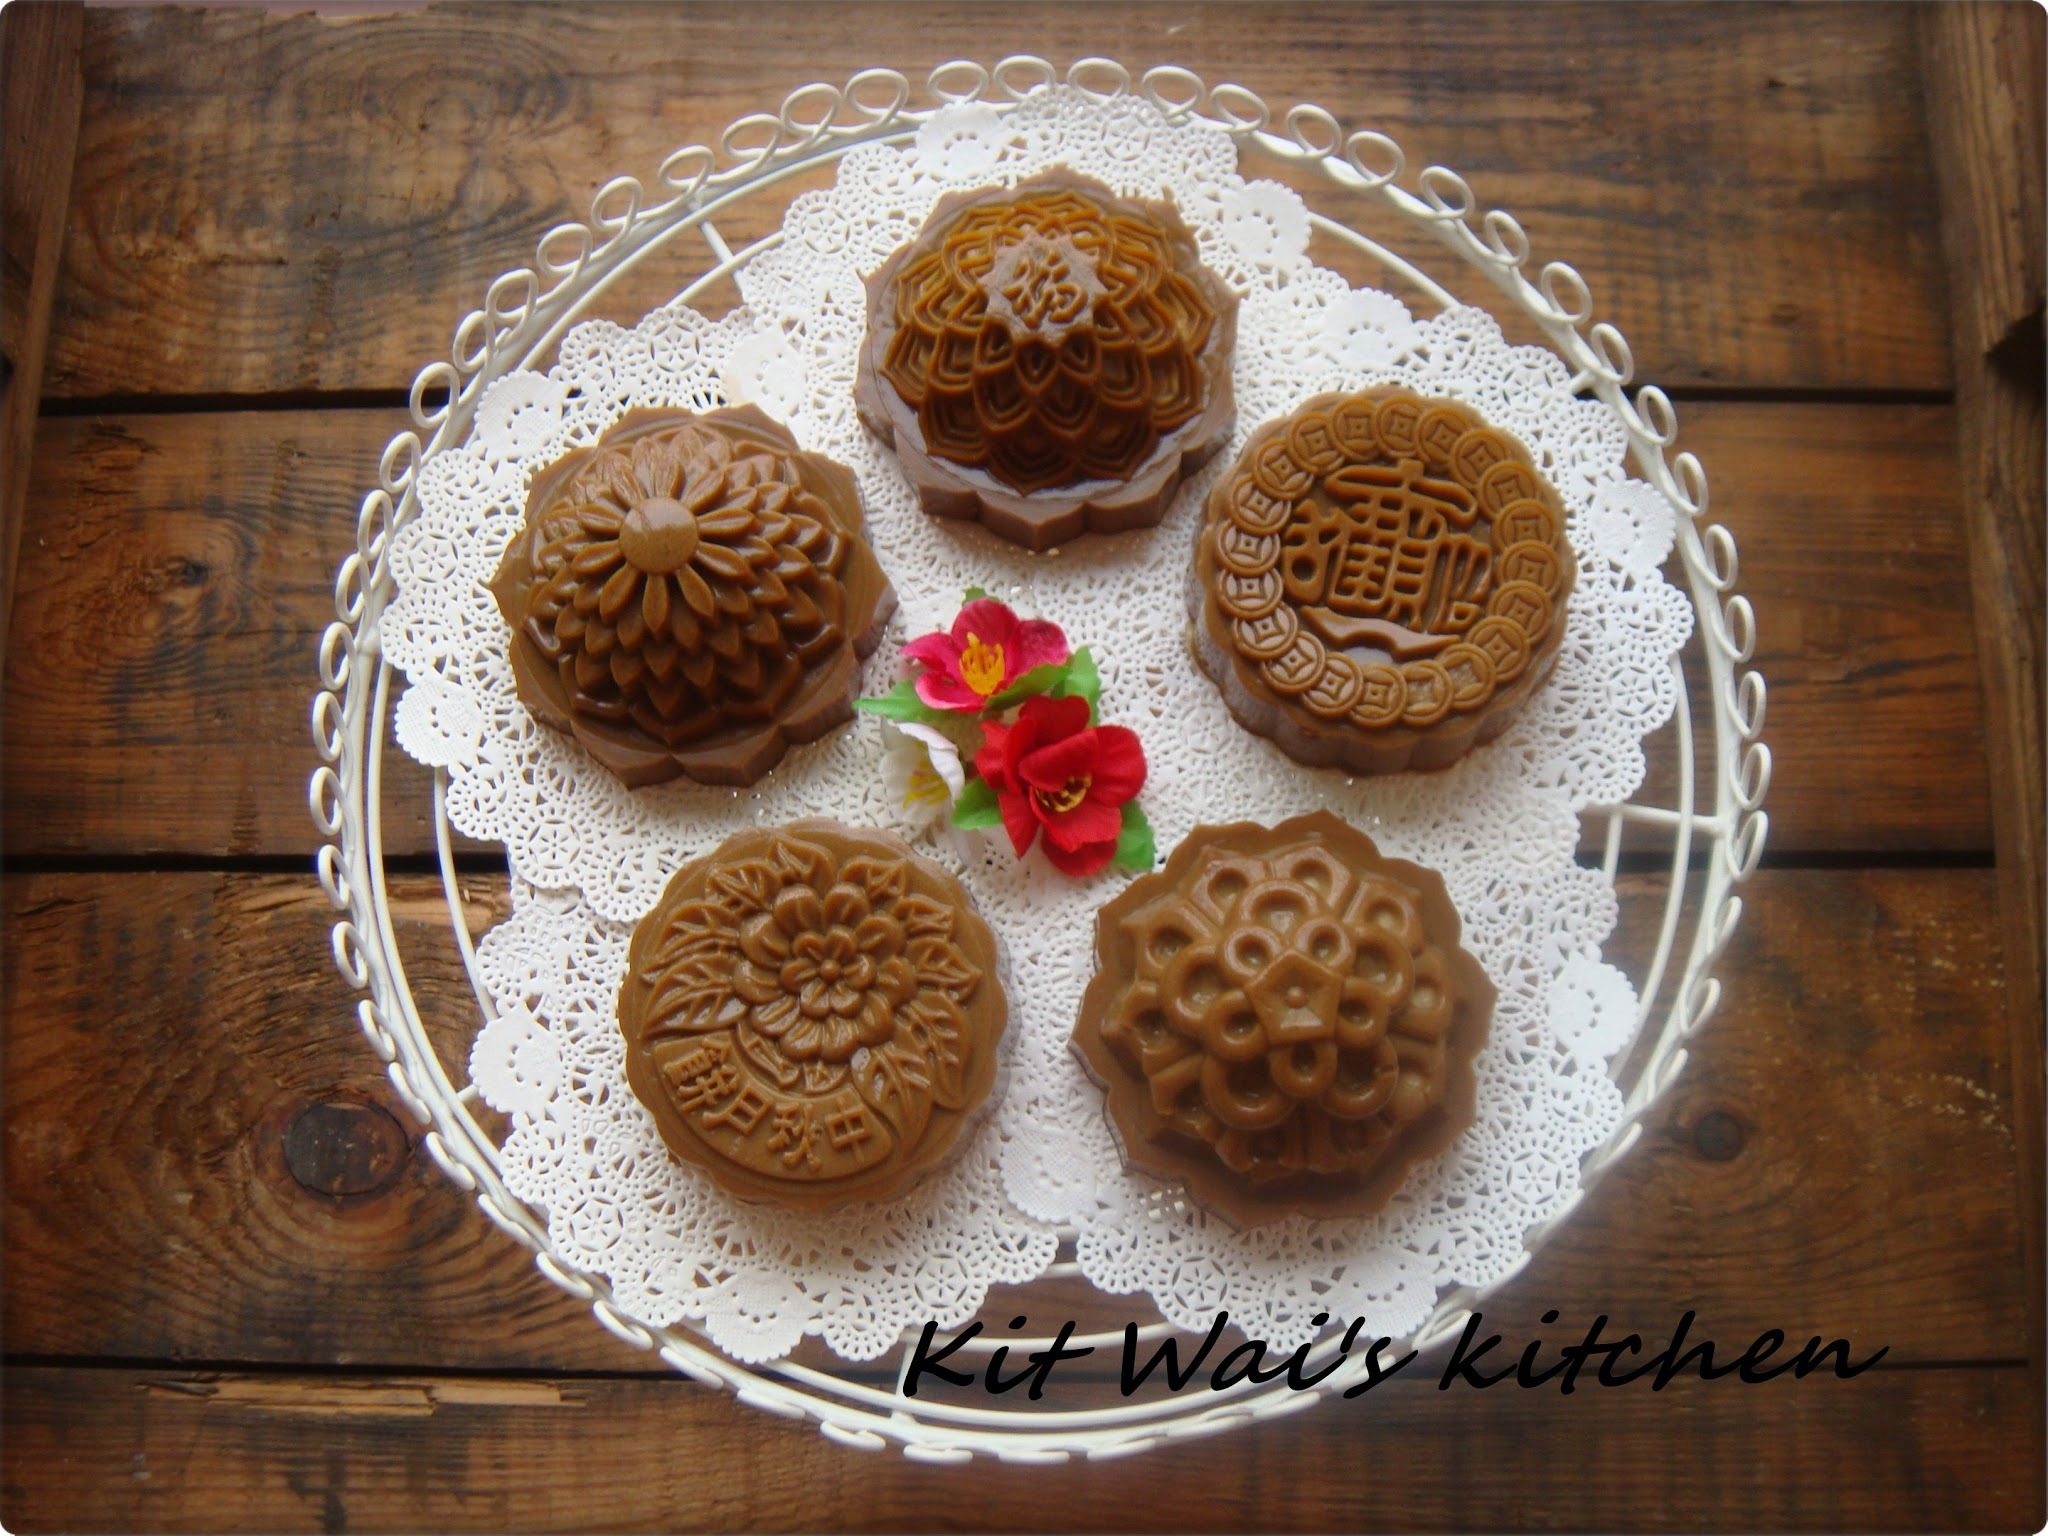 白咖啡燕菜月饼 ~ White Coffee Jelly Mooncakes